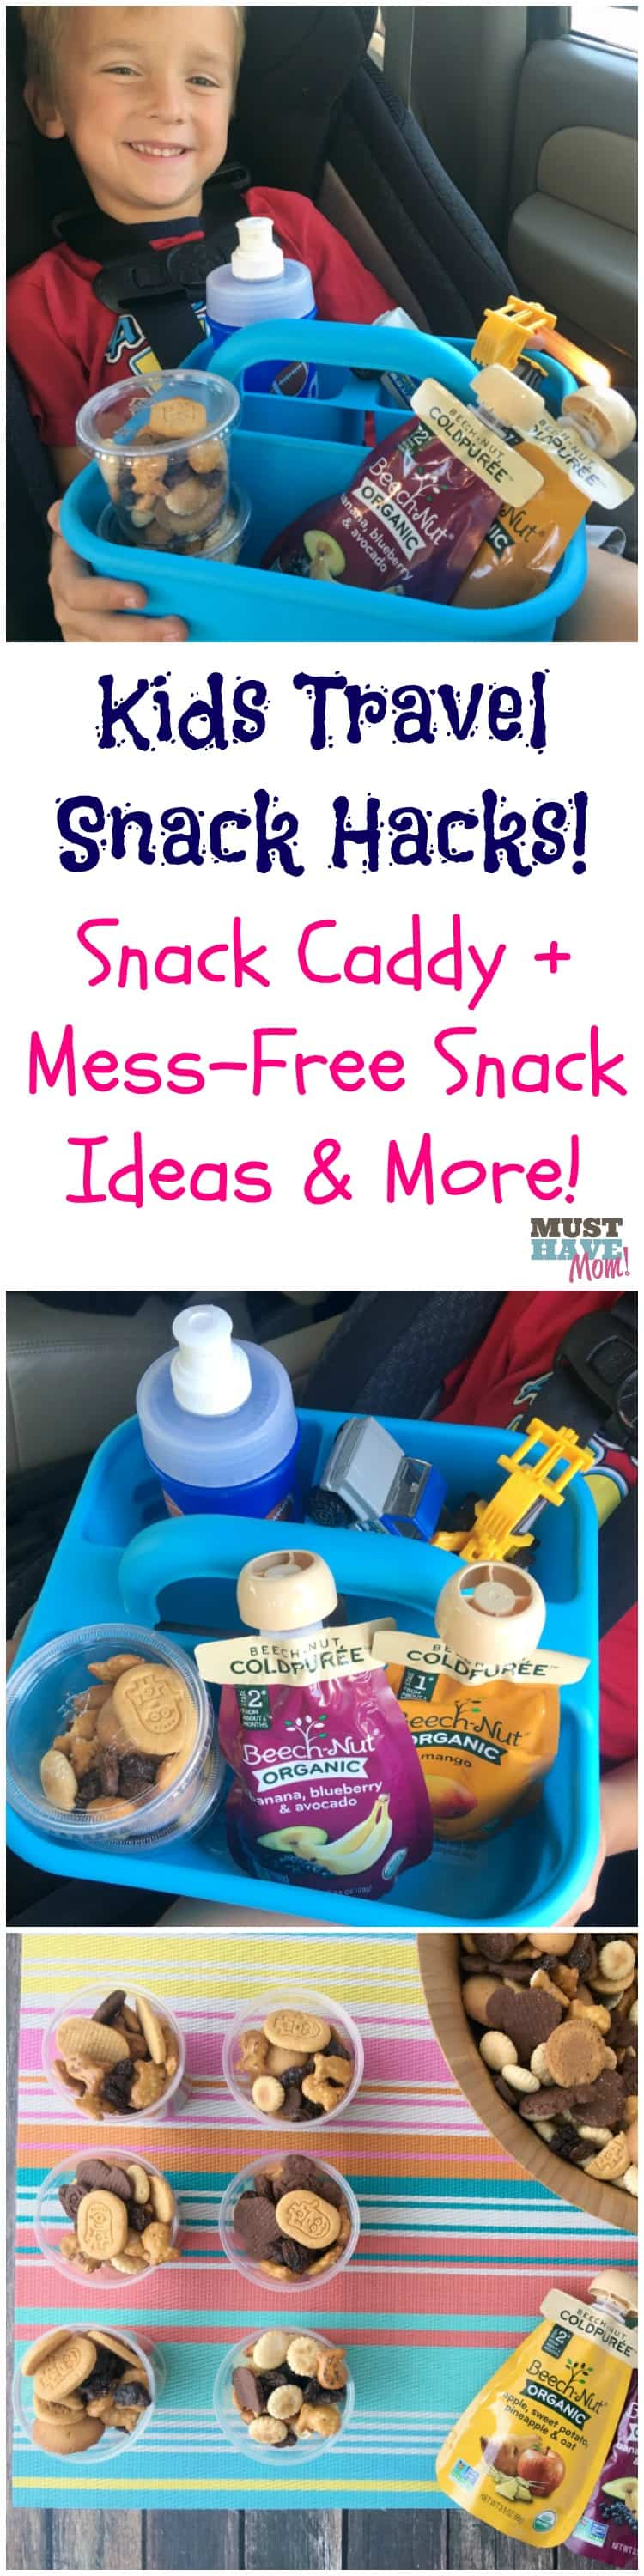 The BEST travel snack hacks for kids! Mess free snack ideas for in the car, travel snack mix recipe, and more! Lots of kids road trip tips!